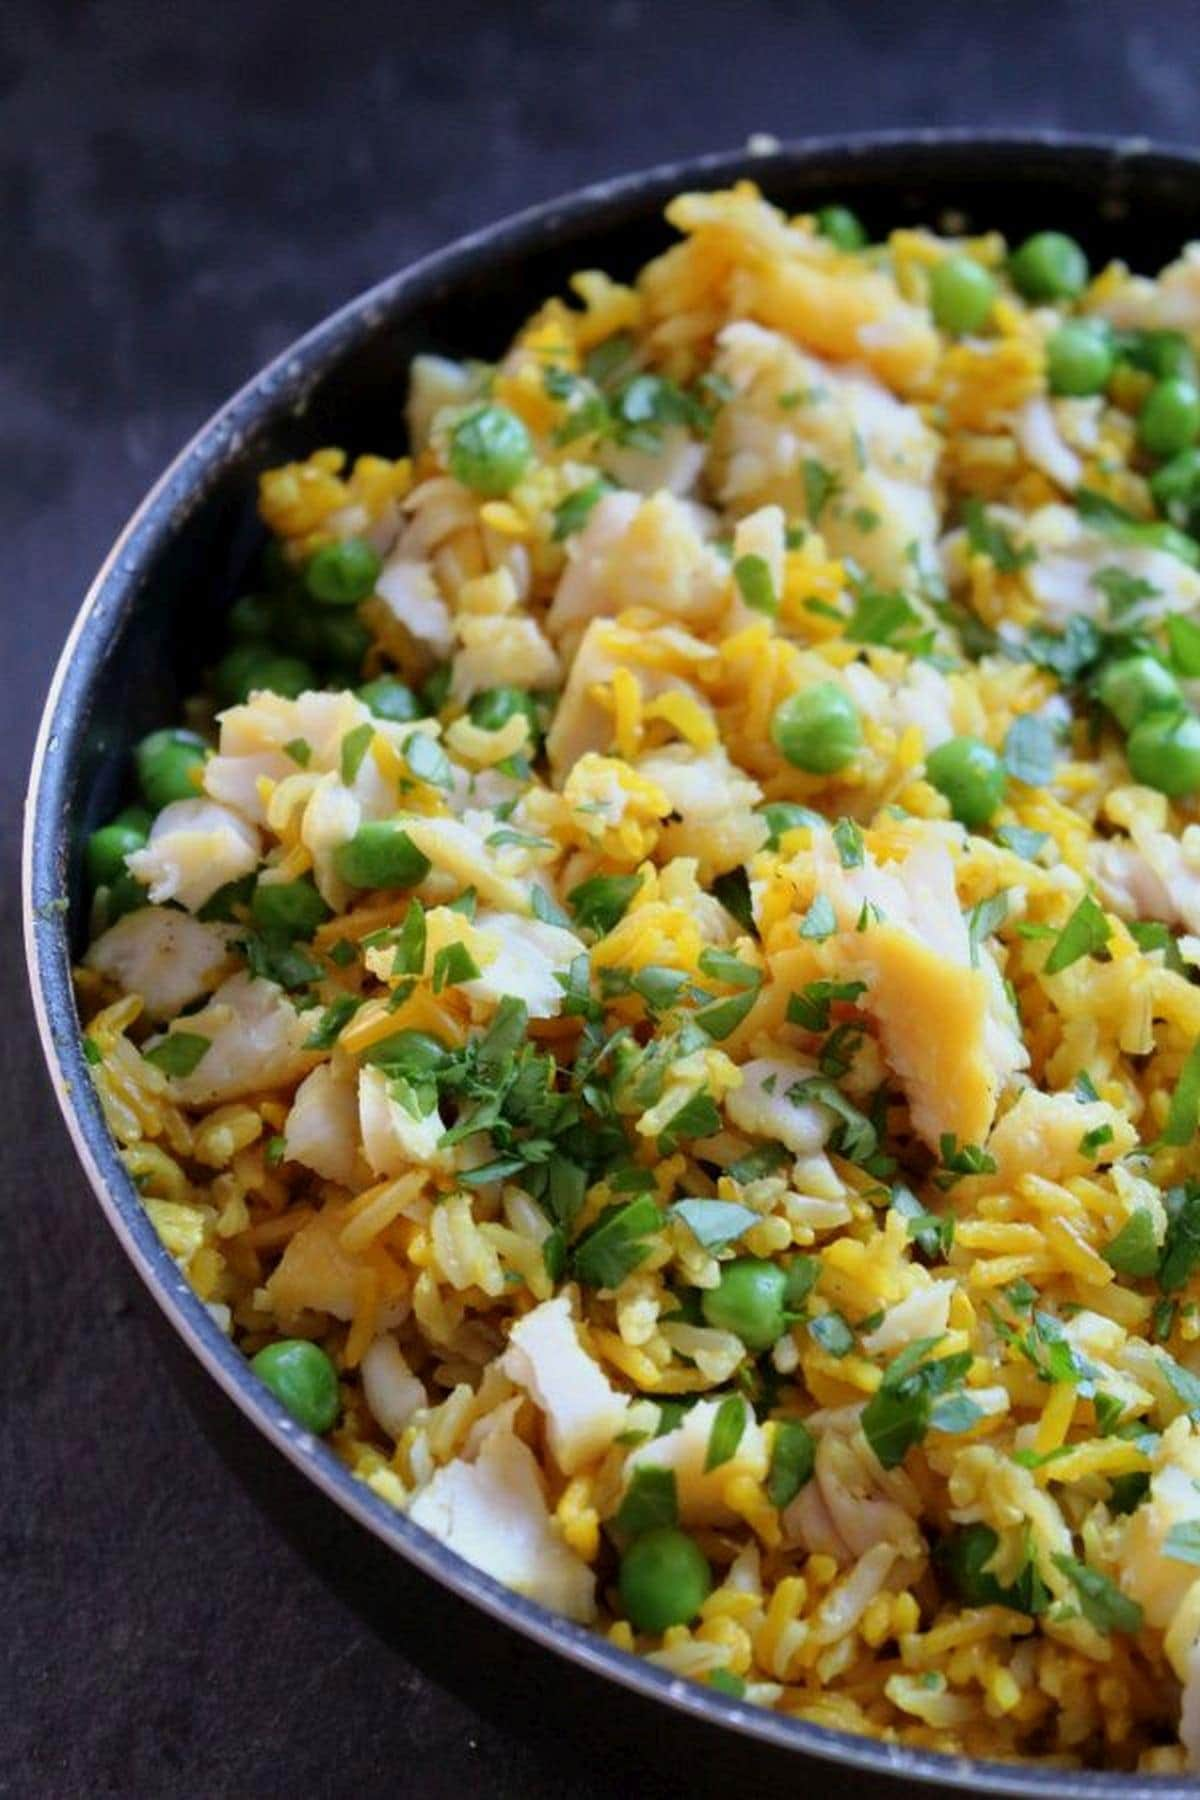 Birds eye view of a pan of cooked kedgeree ready to serve.